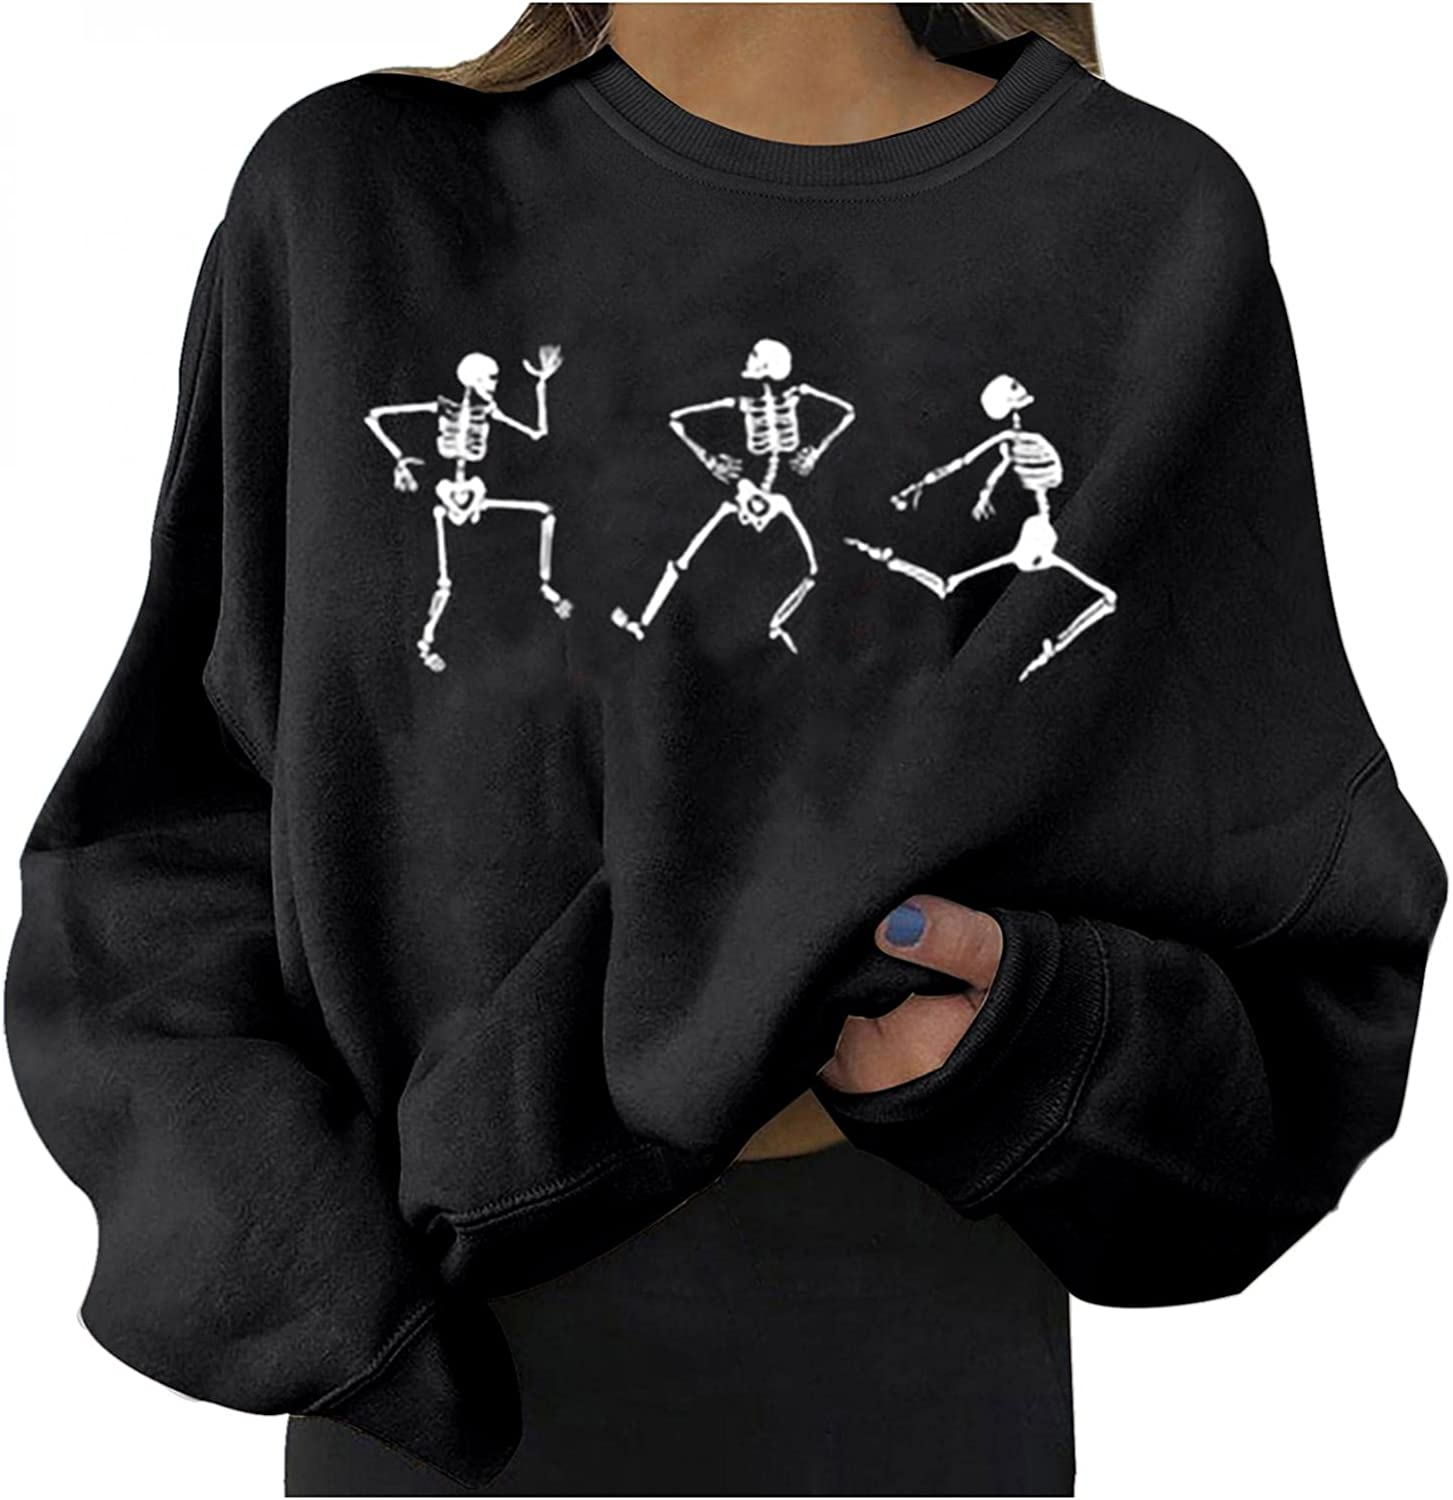 Oversized Very popular Sweatshirt for Choice Women Vintage Fashion Casual Cr Graphic